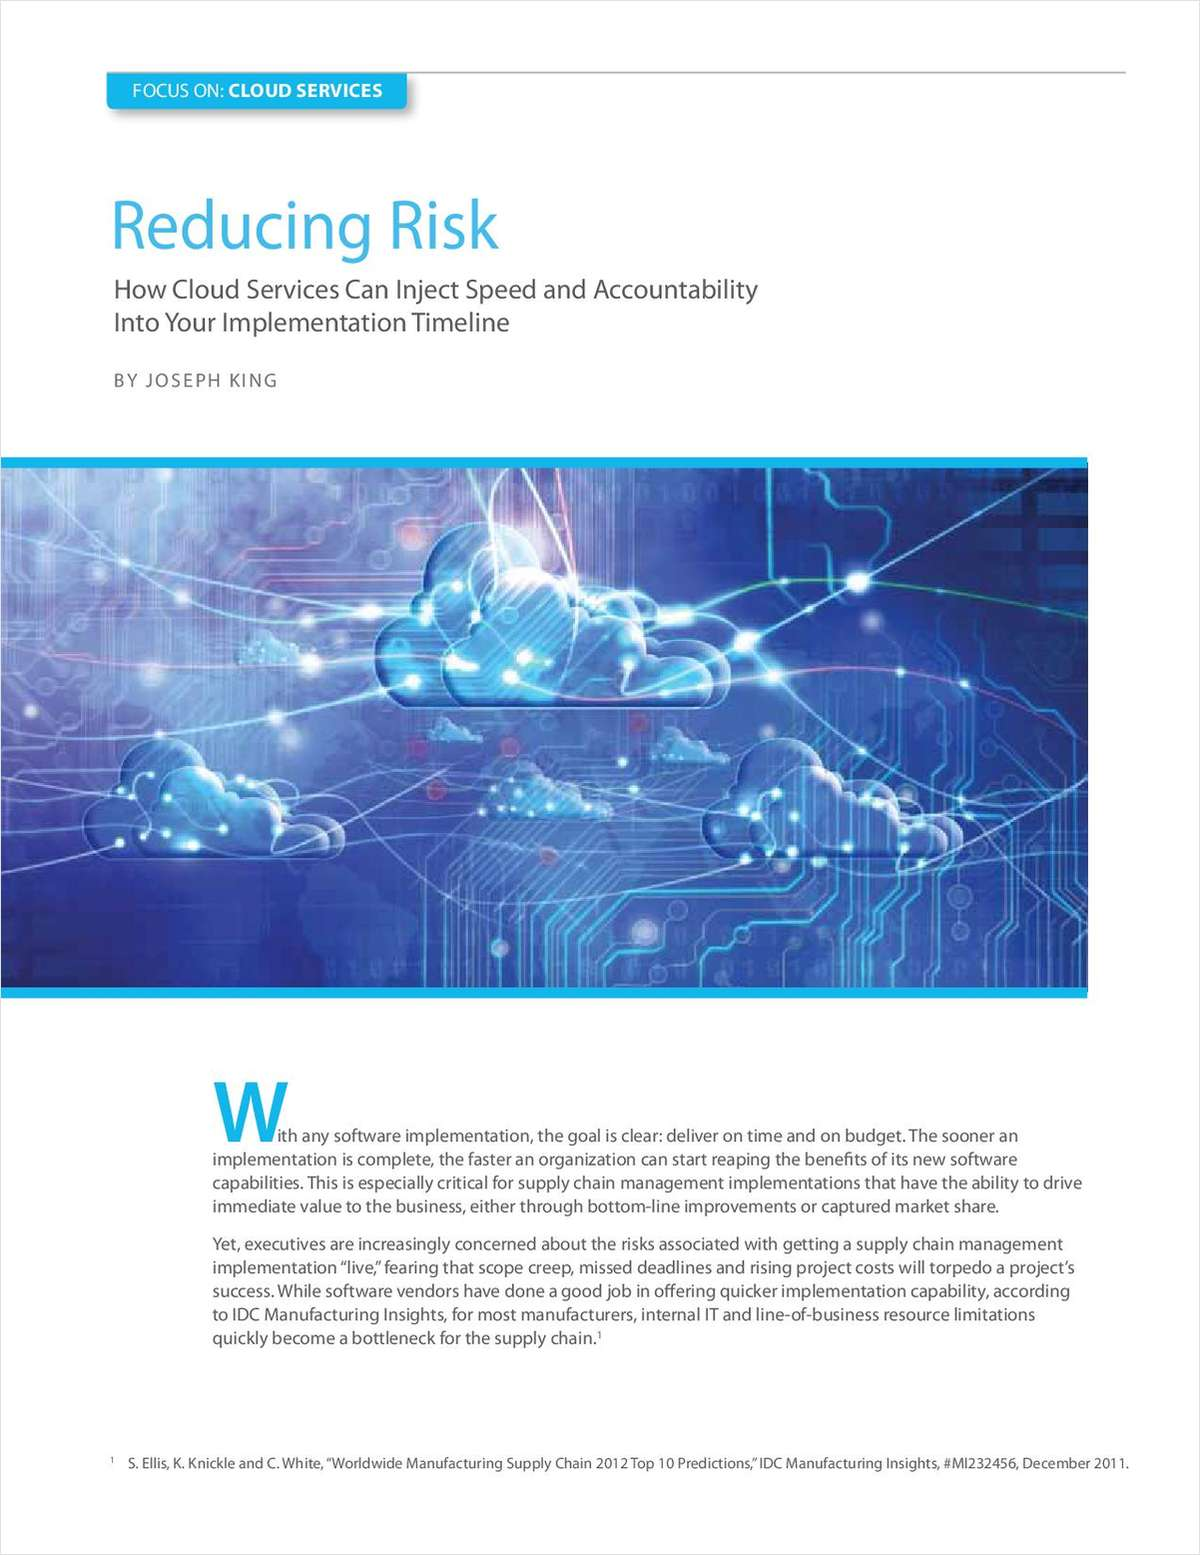 Reducing Risk: How Cloud Services Can Inject Speed and Accountability Into Your Implementation Timeline